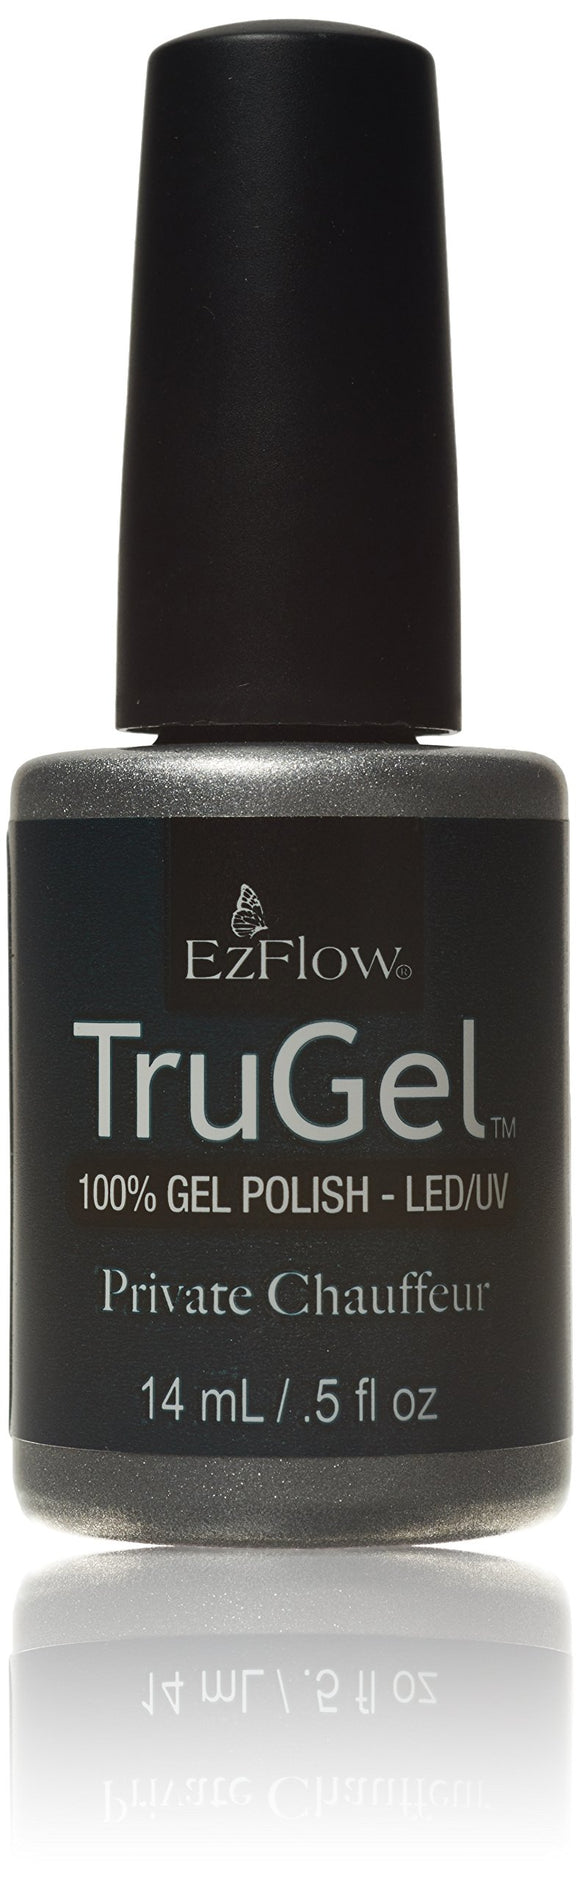 Ez Flow TruGel LED/UV Gel Polish - 14 mL (Private Chauffeur - EZTG42327)